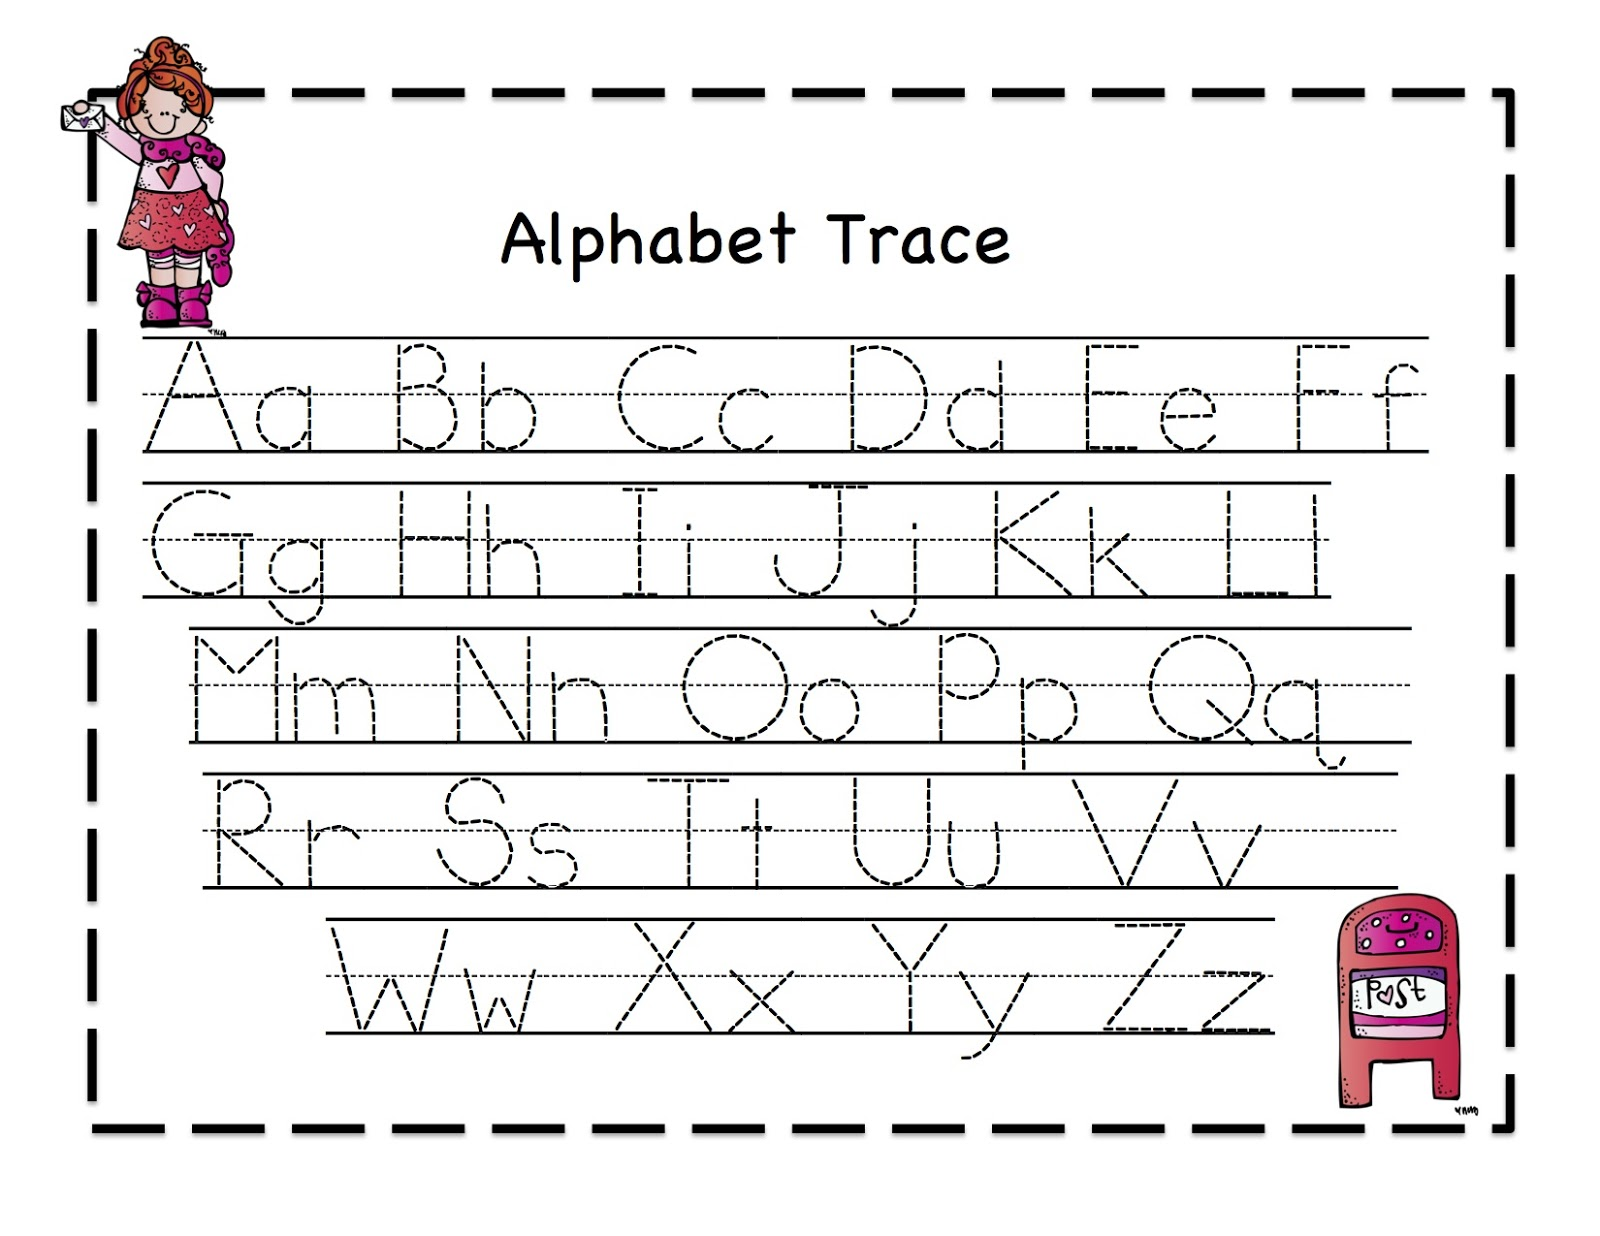 Lego Angry Birds Worksheet Letters